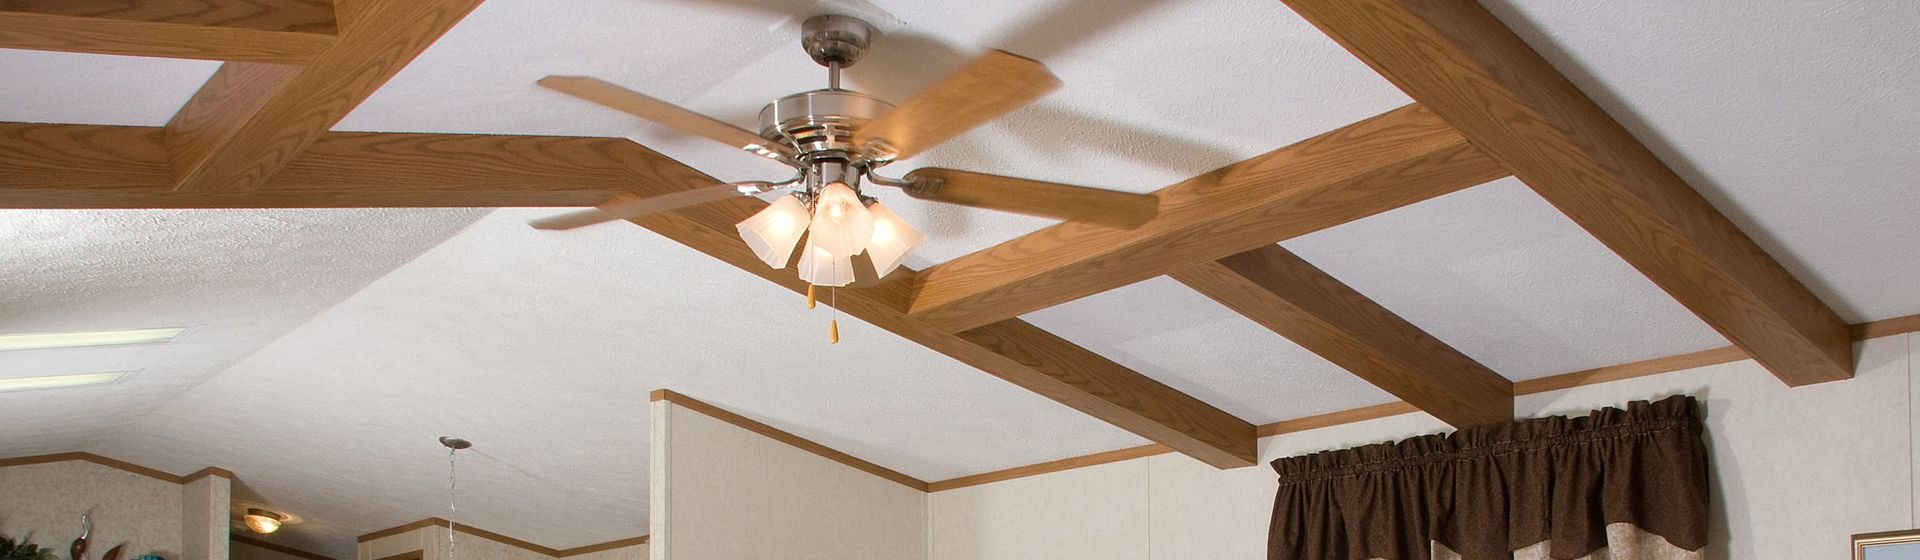 Ceiling fans commodore of pennsylvania ceiling beam application with lighted paddle fan aloadofball Images